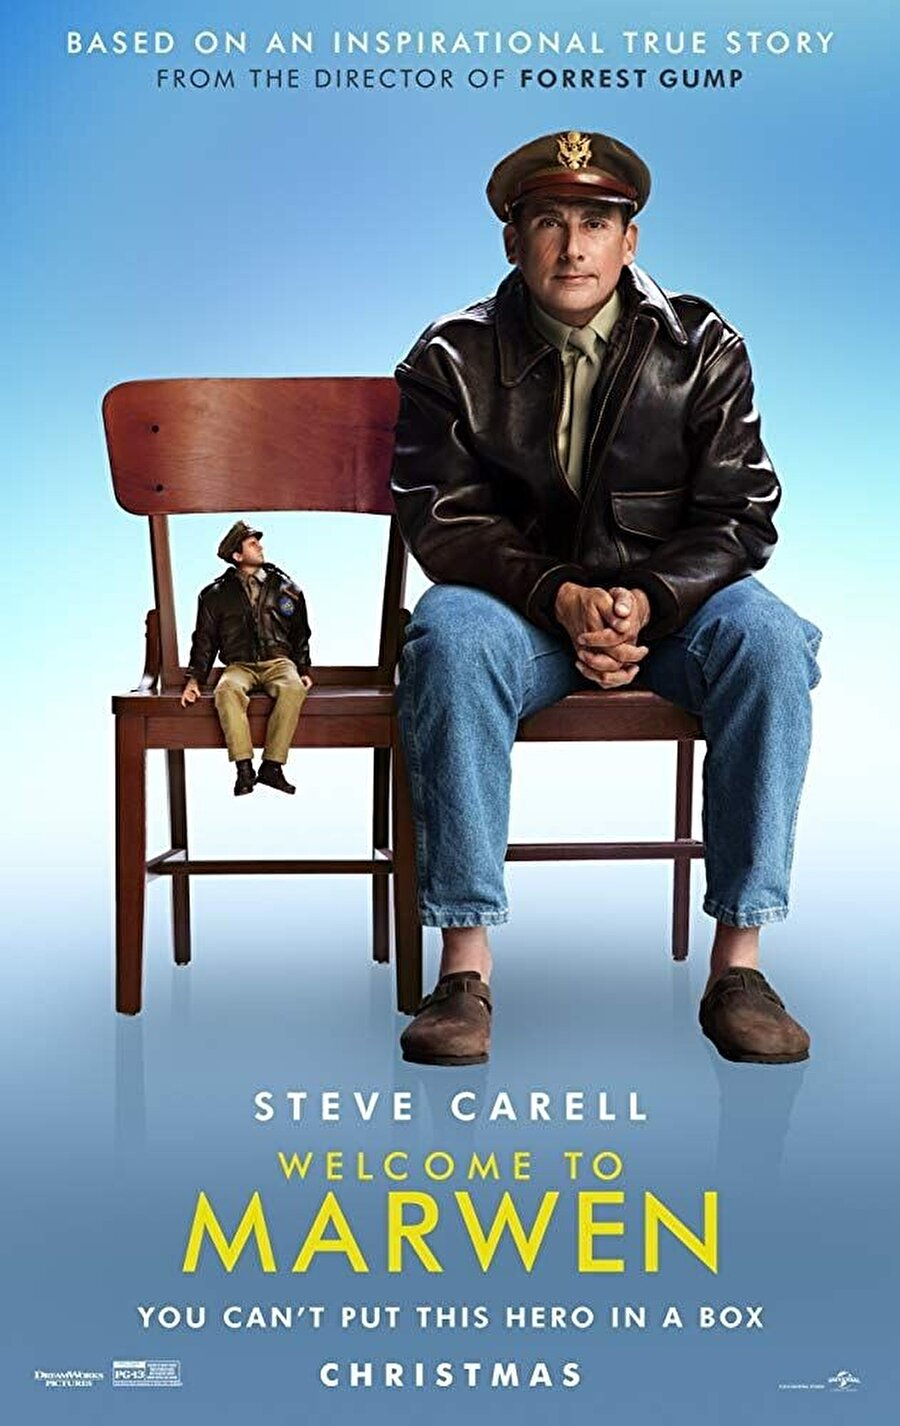 20. Welcome to Marwen (2018)